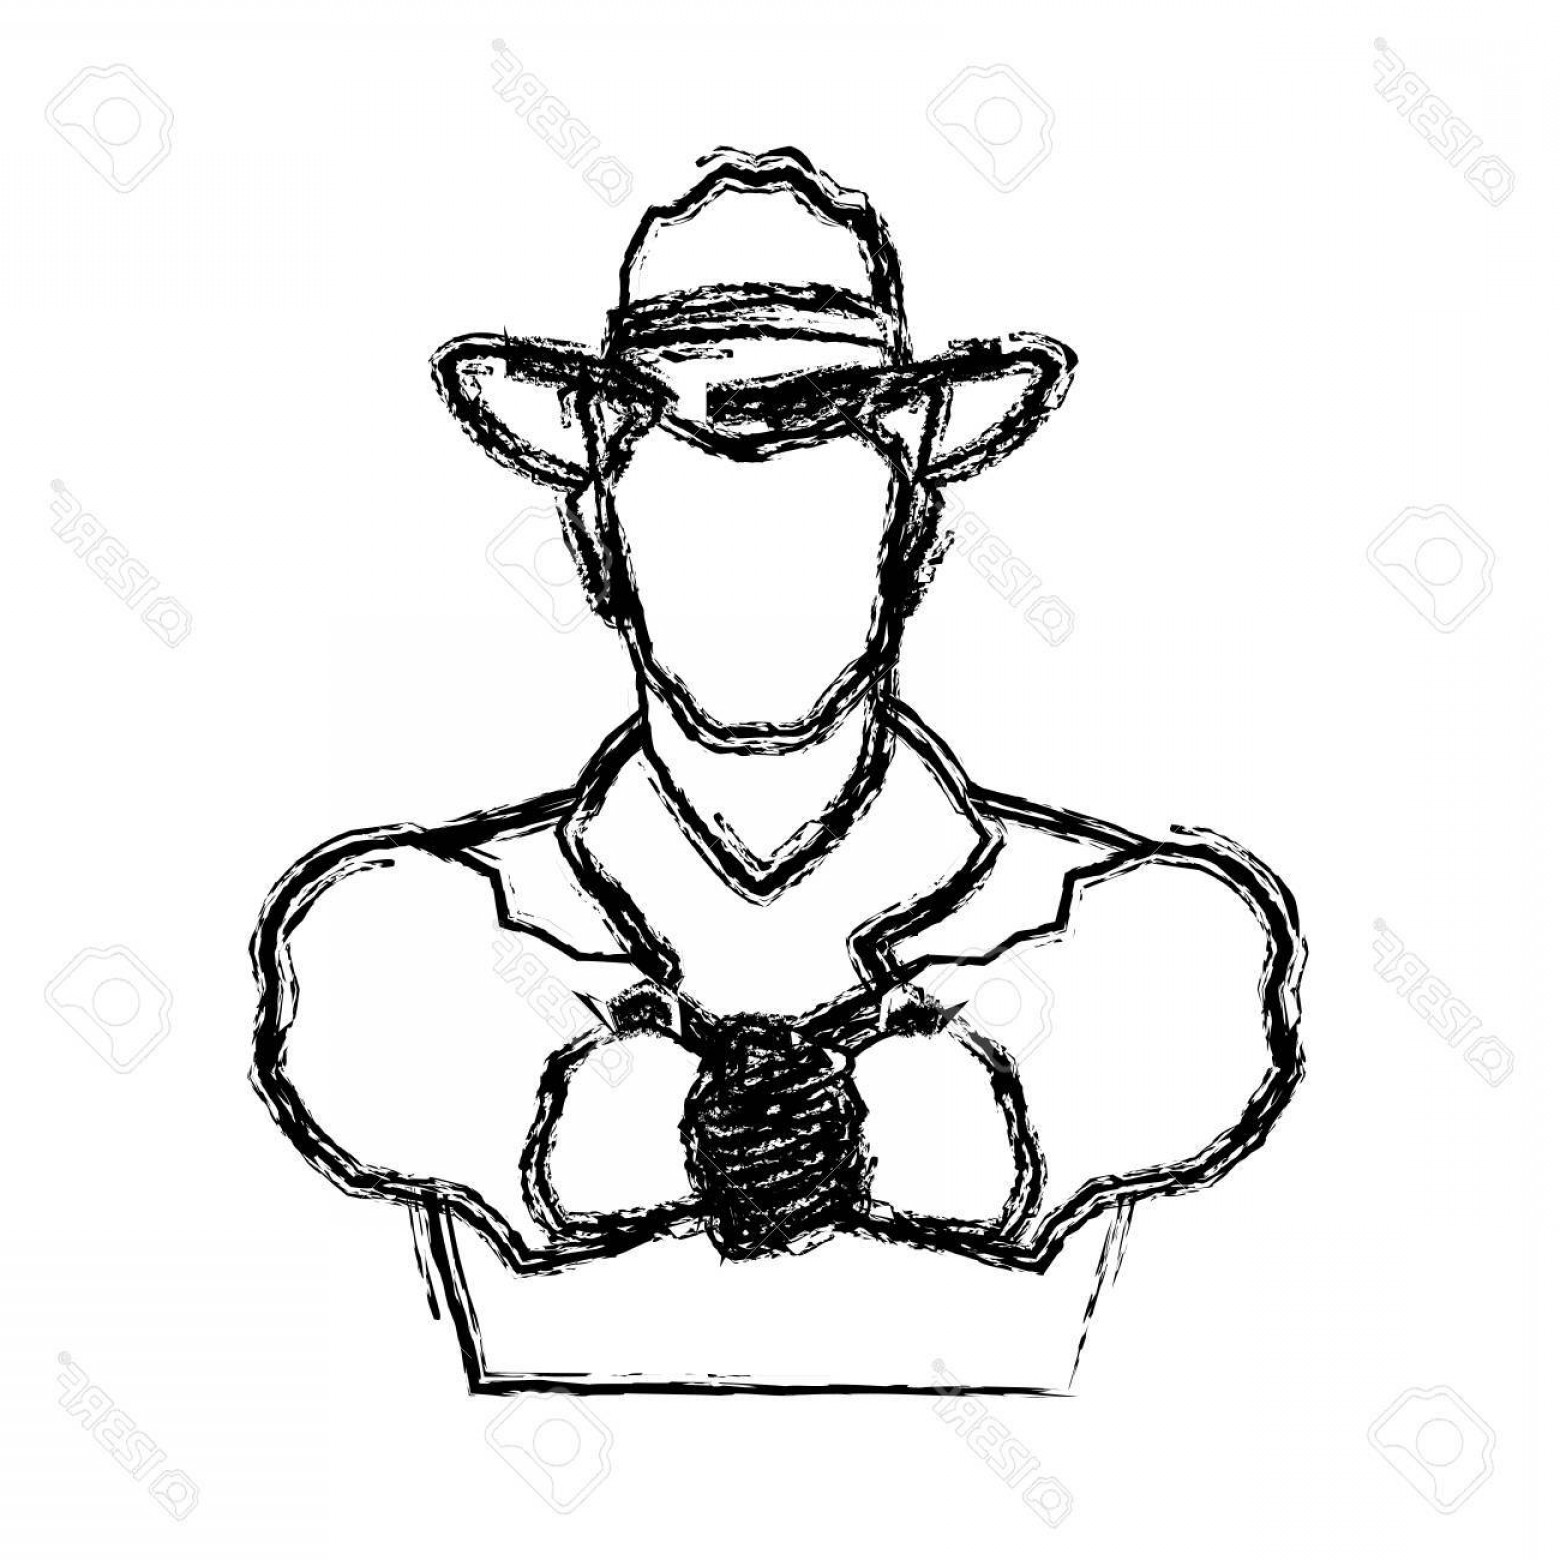 Cowboys Line Drawings Vector: Photostock Vector Portrait Man In Cowboy Hat Sketch Vector Illustration